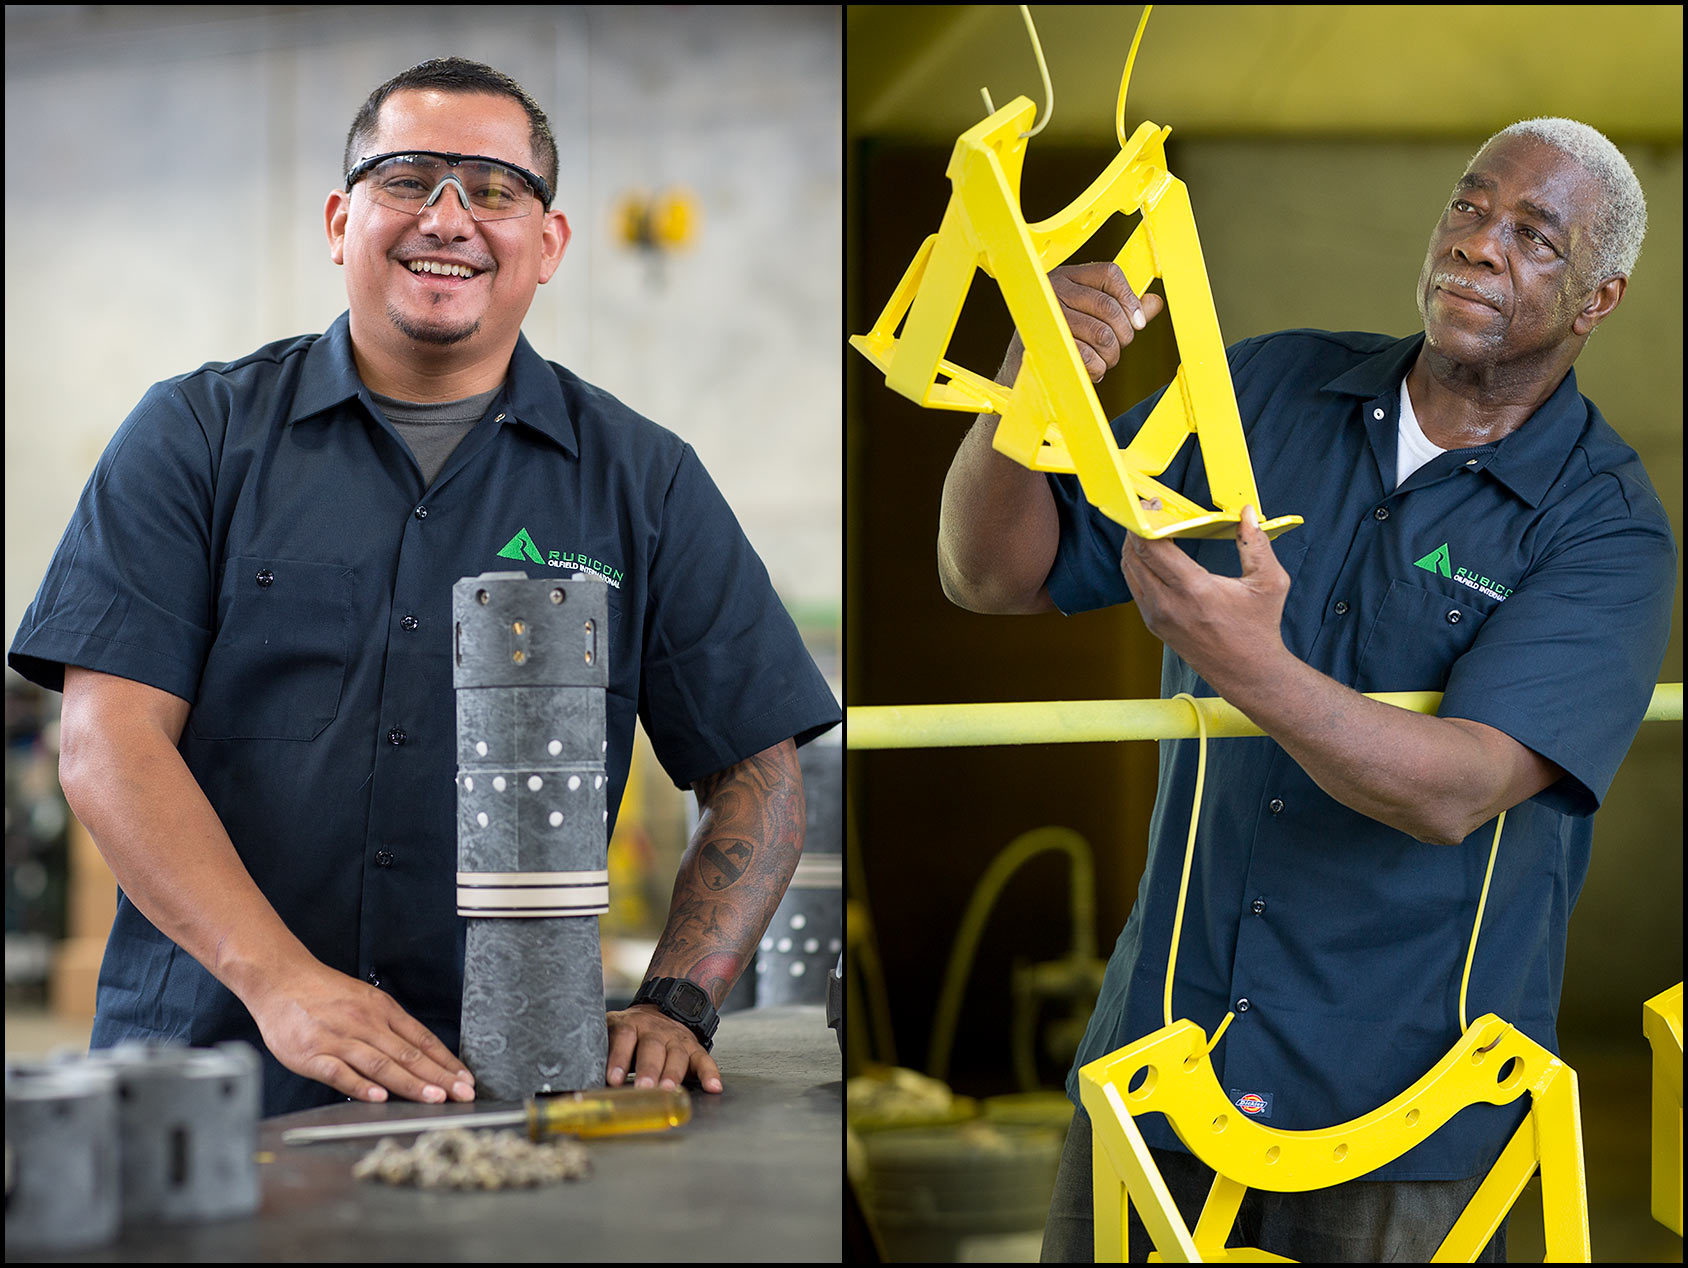 Oilfield tool factory workers: Hispanic/Latino worker at an assembly bench (L), Painted components are inspected by an African-American worker (R).